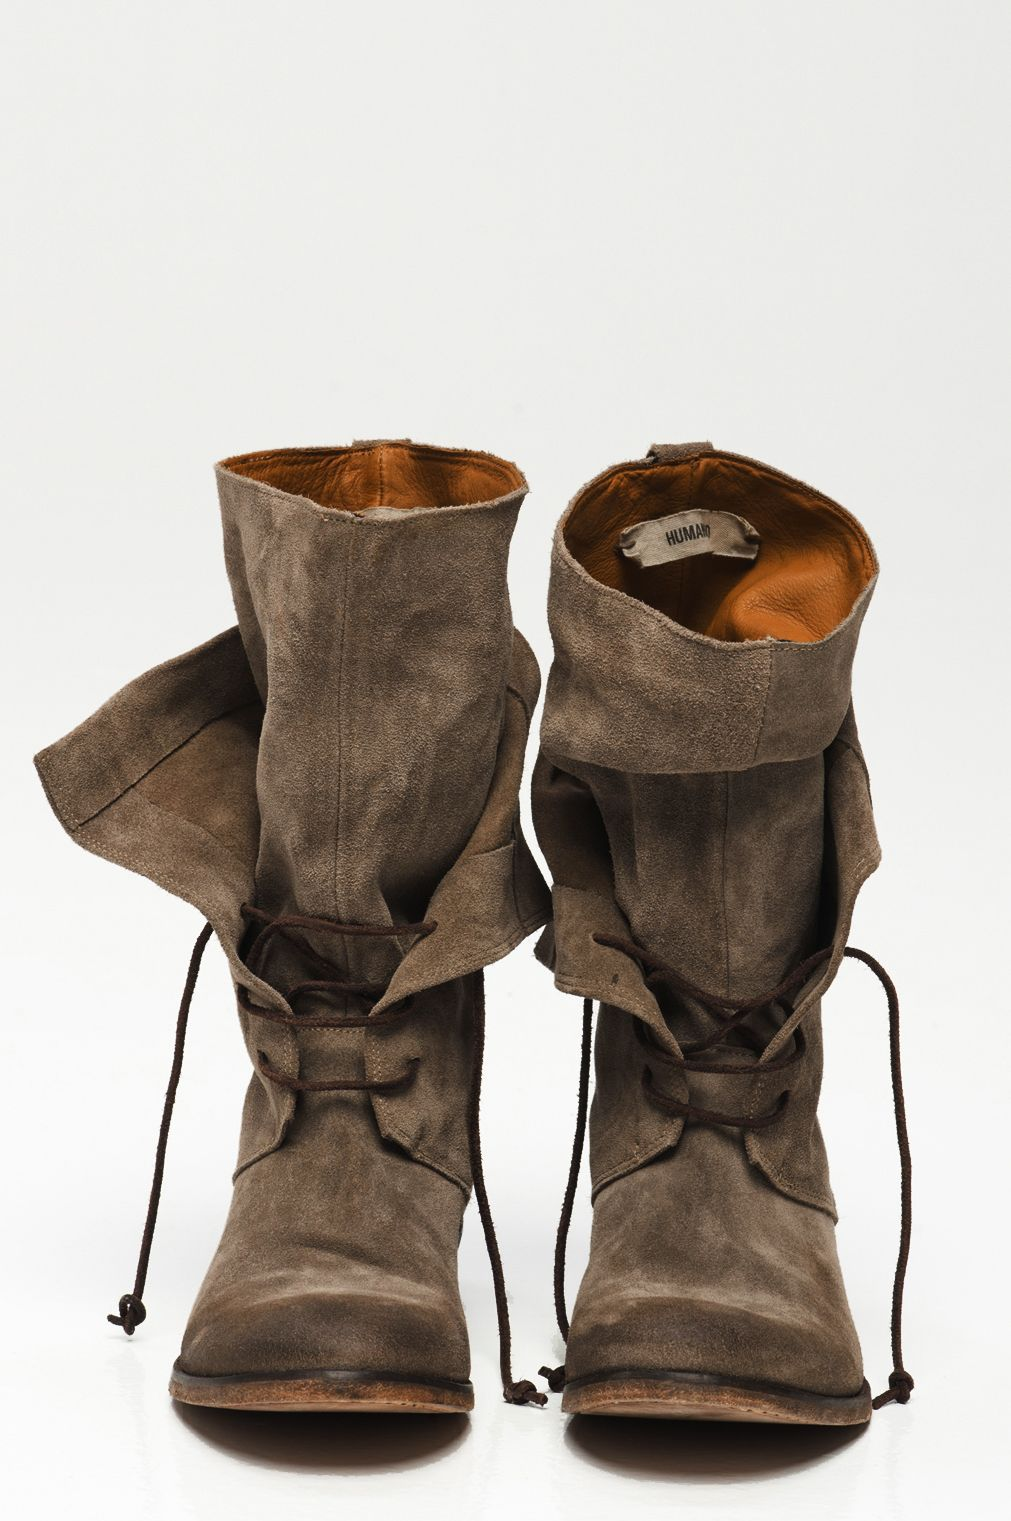 oh yahhh... CHALK SHOES - CAMILLA L › SHOES › HUMANOID WEBSHOP